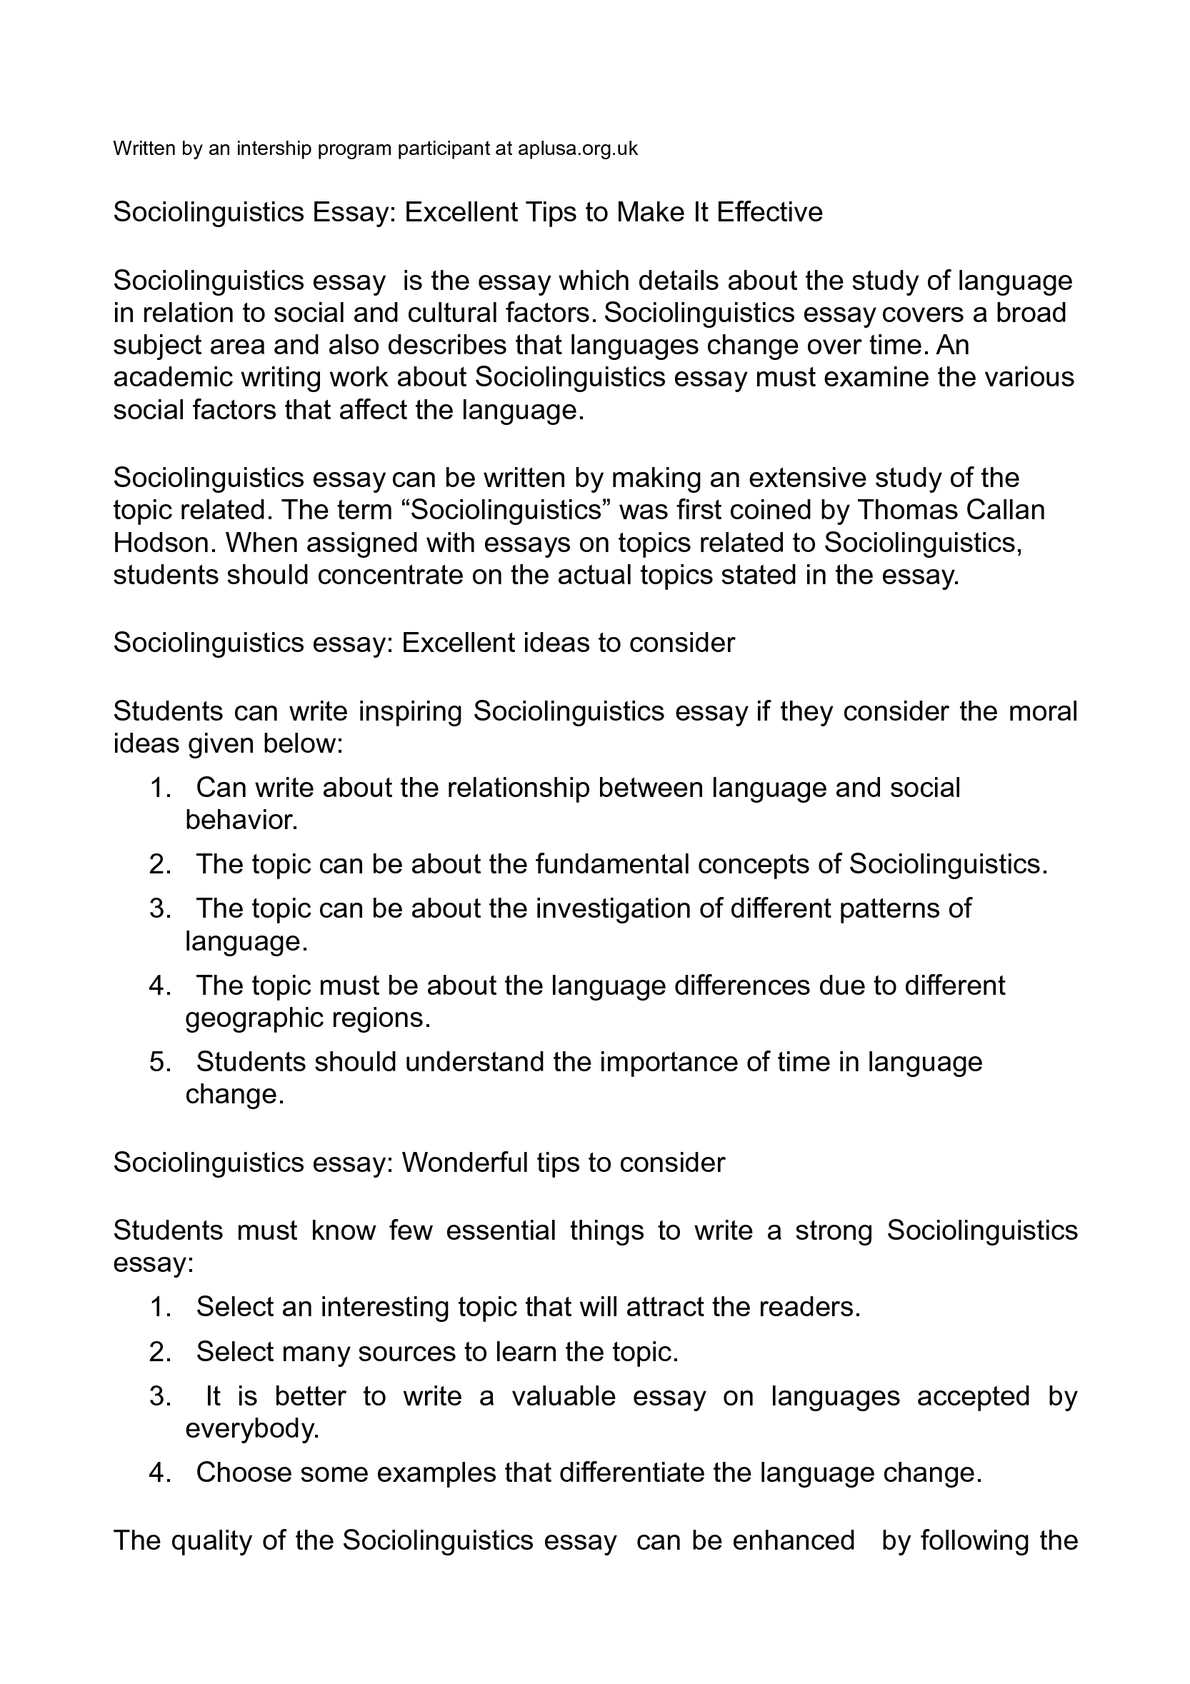 how to write a sociolinguistics essay